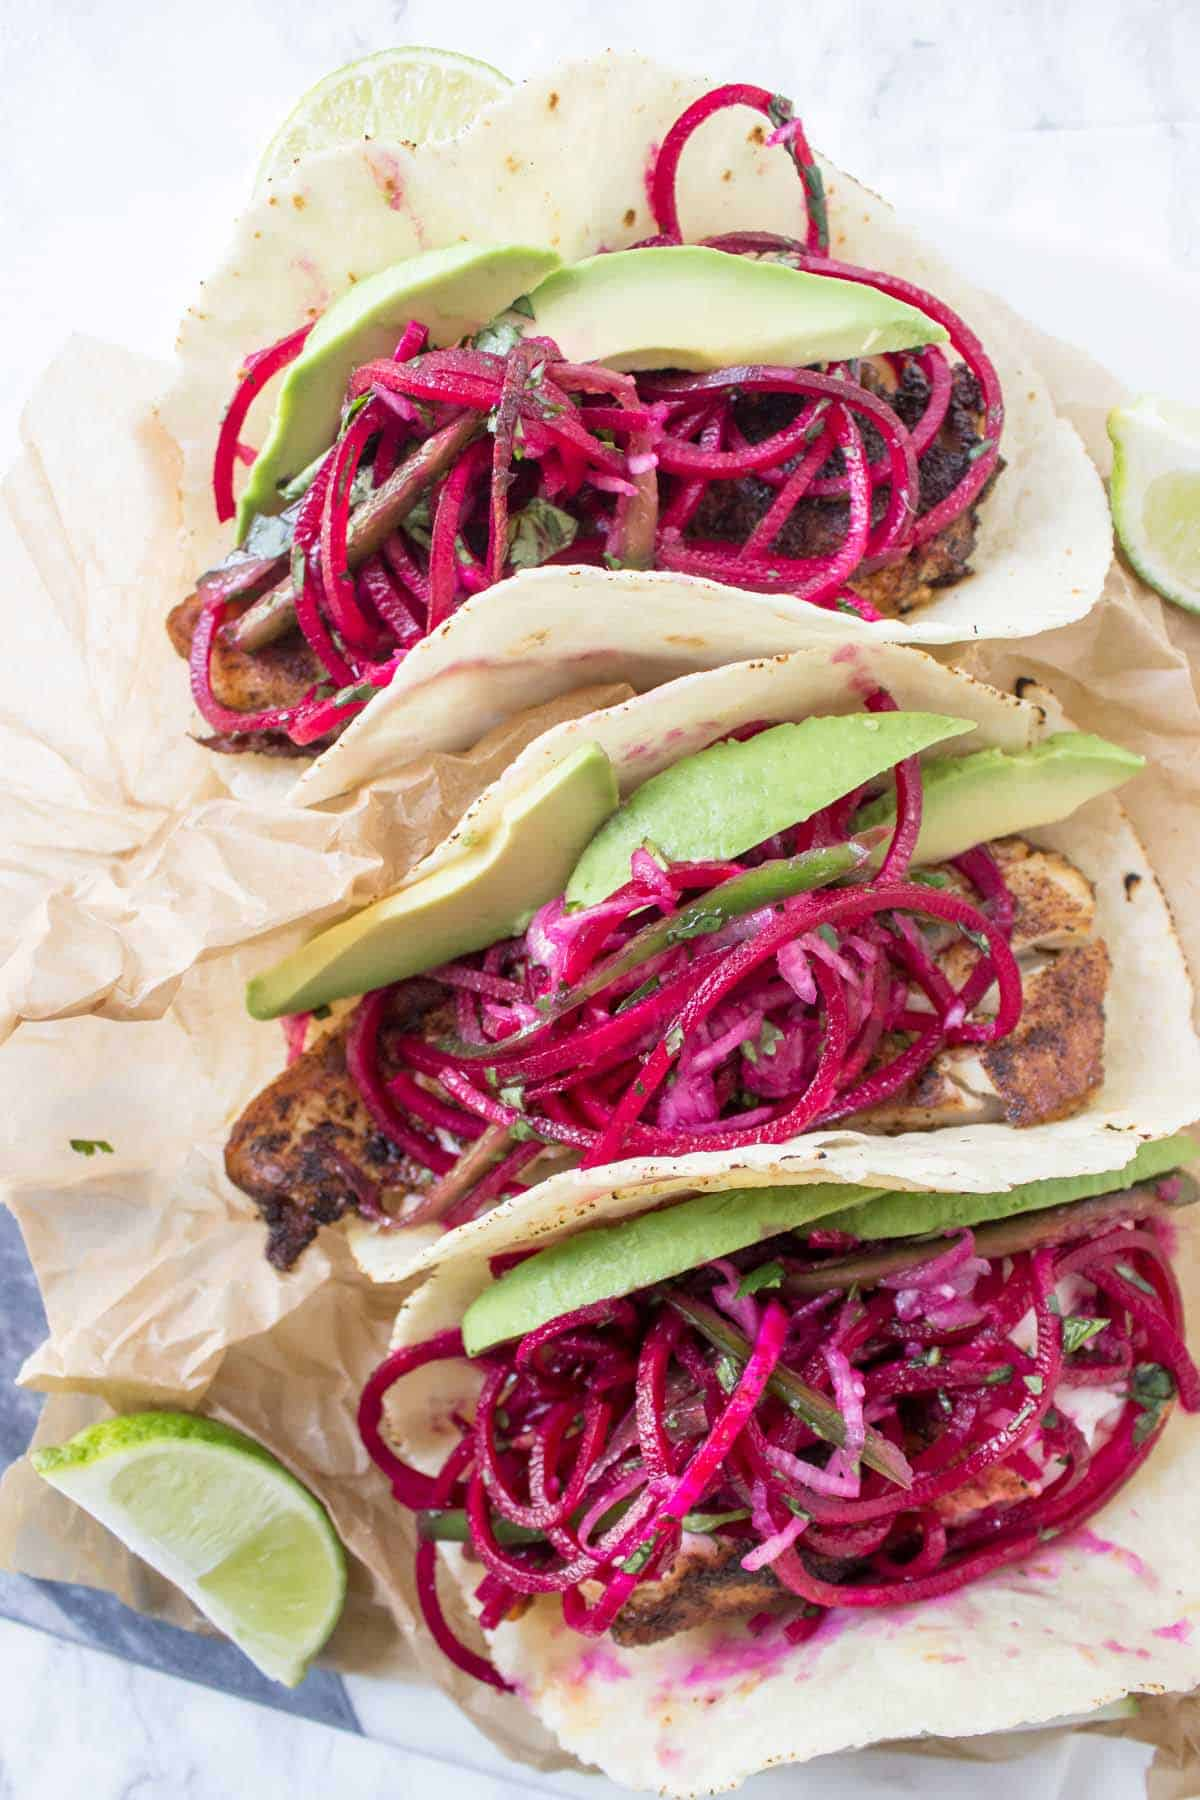 Spicy Fish Tacos with Beet Slaw finished